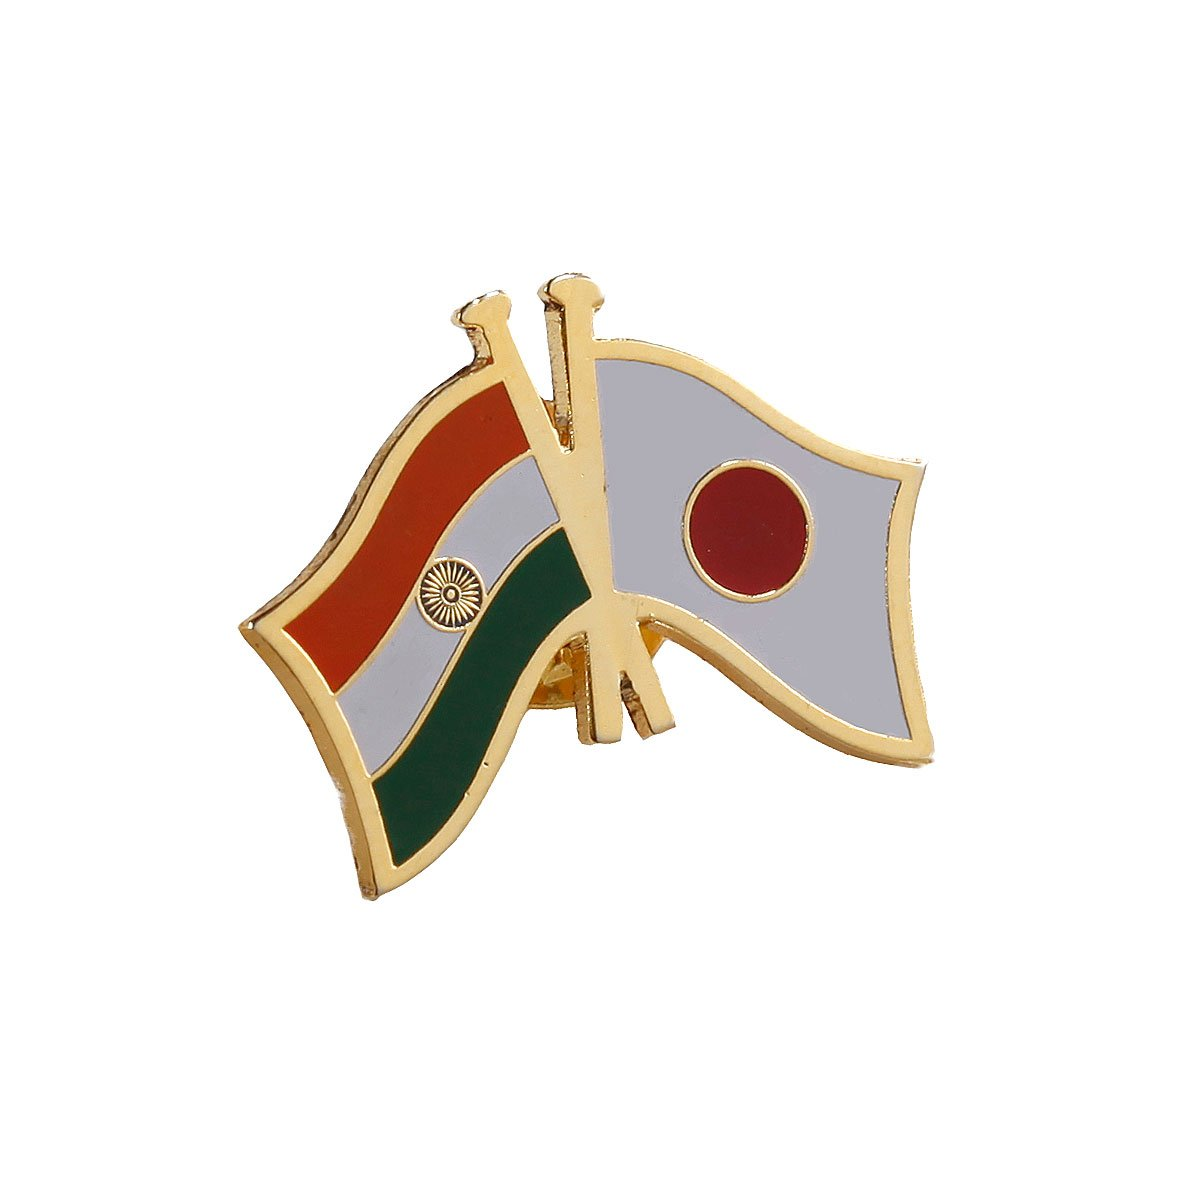 India-Japan ink Open Sky Agreement